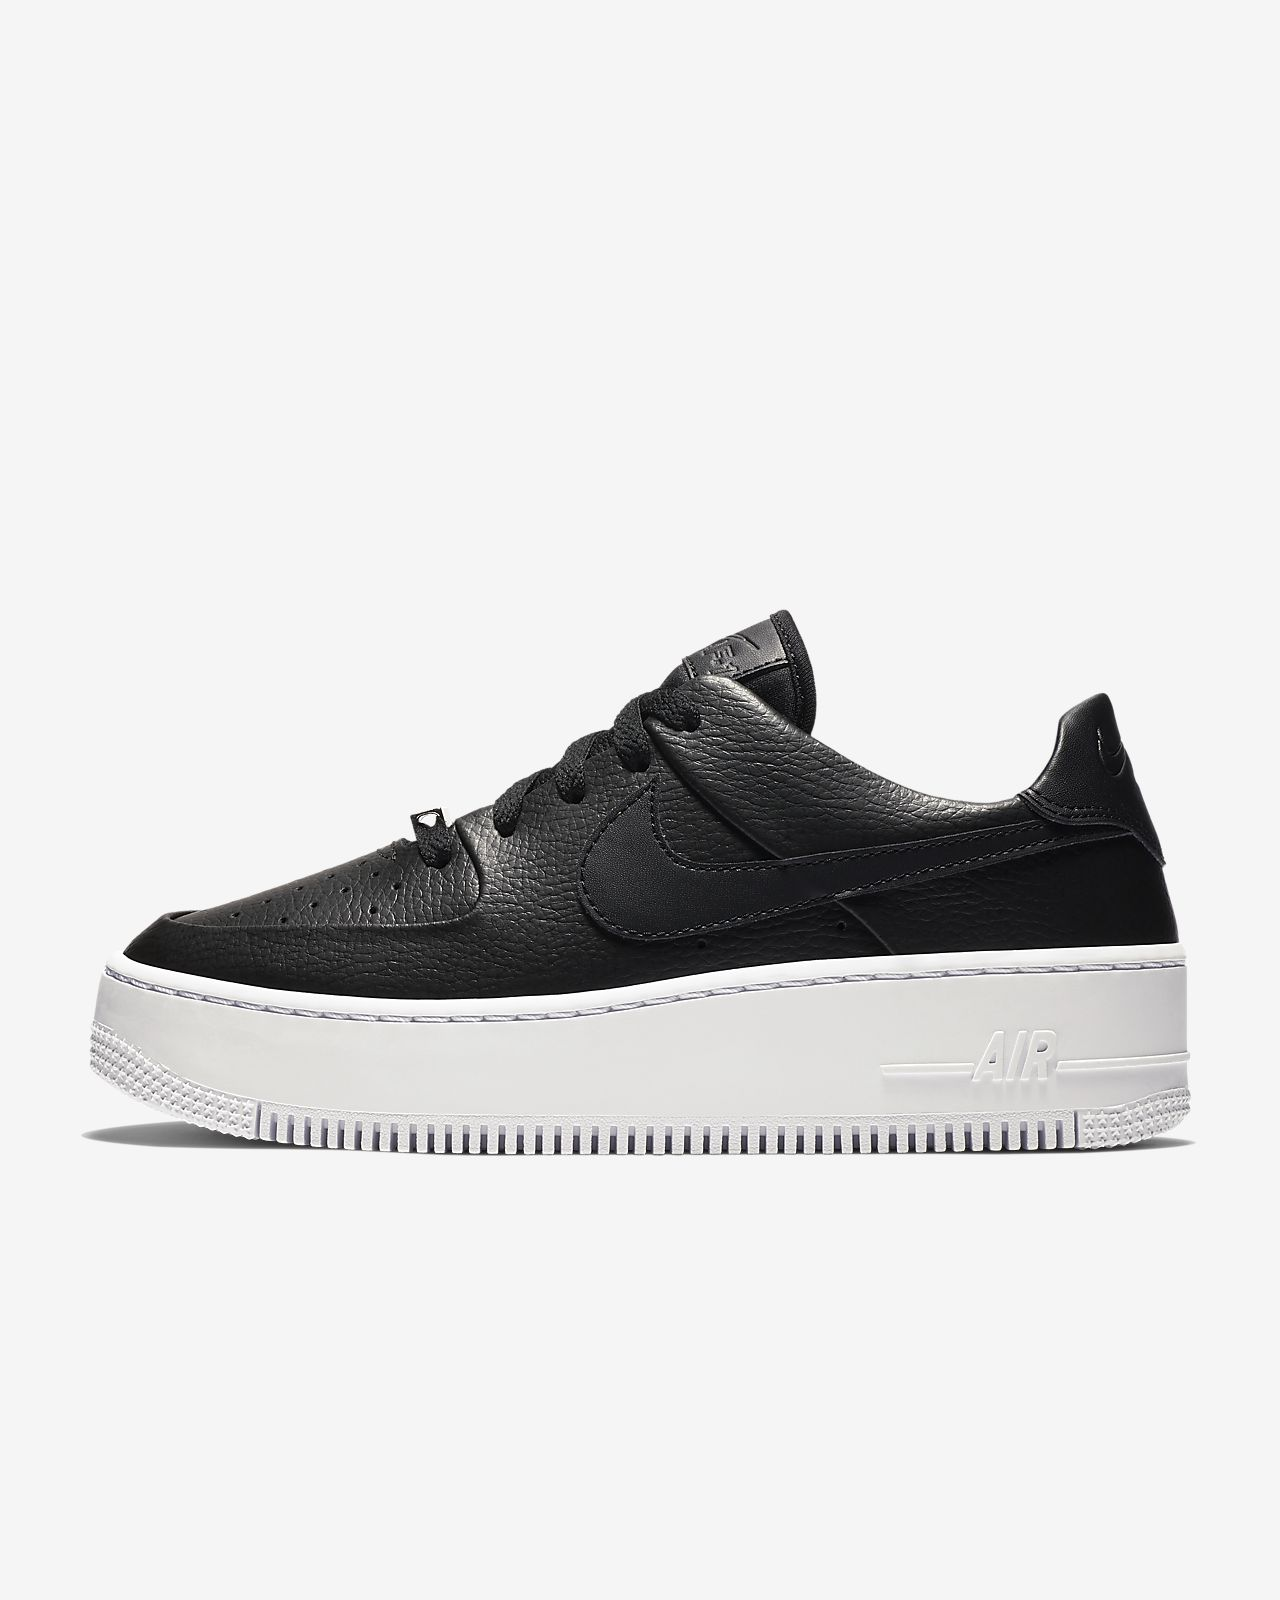 4046f102506 Chaussure Nike Air Force 1 Sage Low pour Femme. Nike.com CA